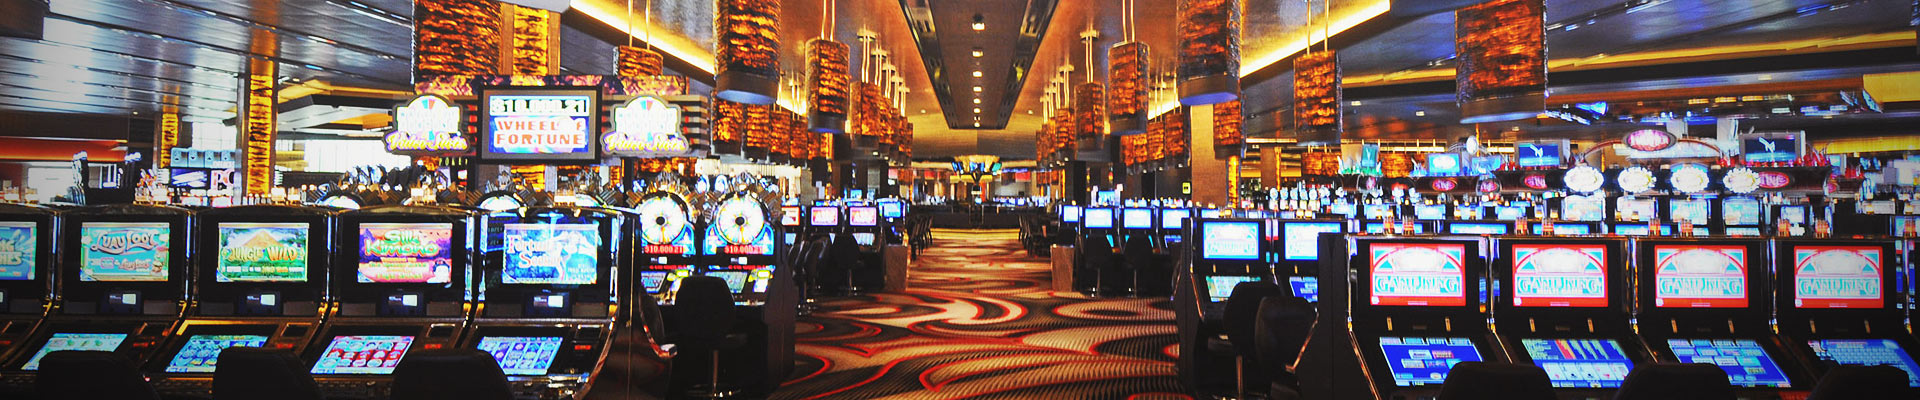 Imperial casino ca gambling for charity